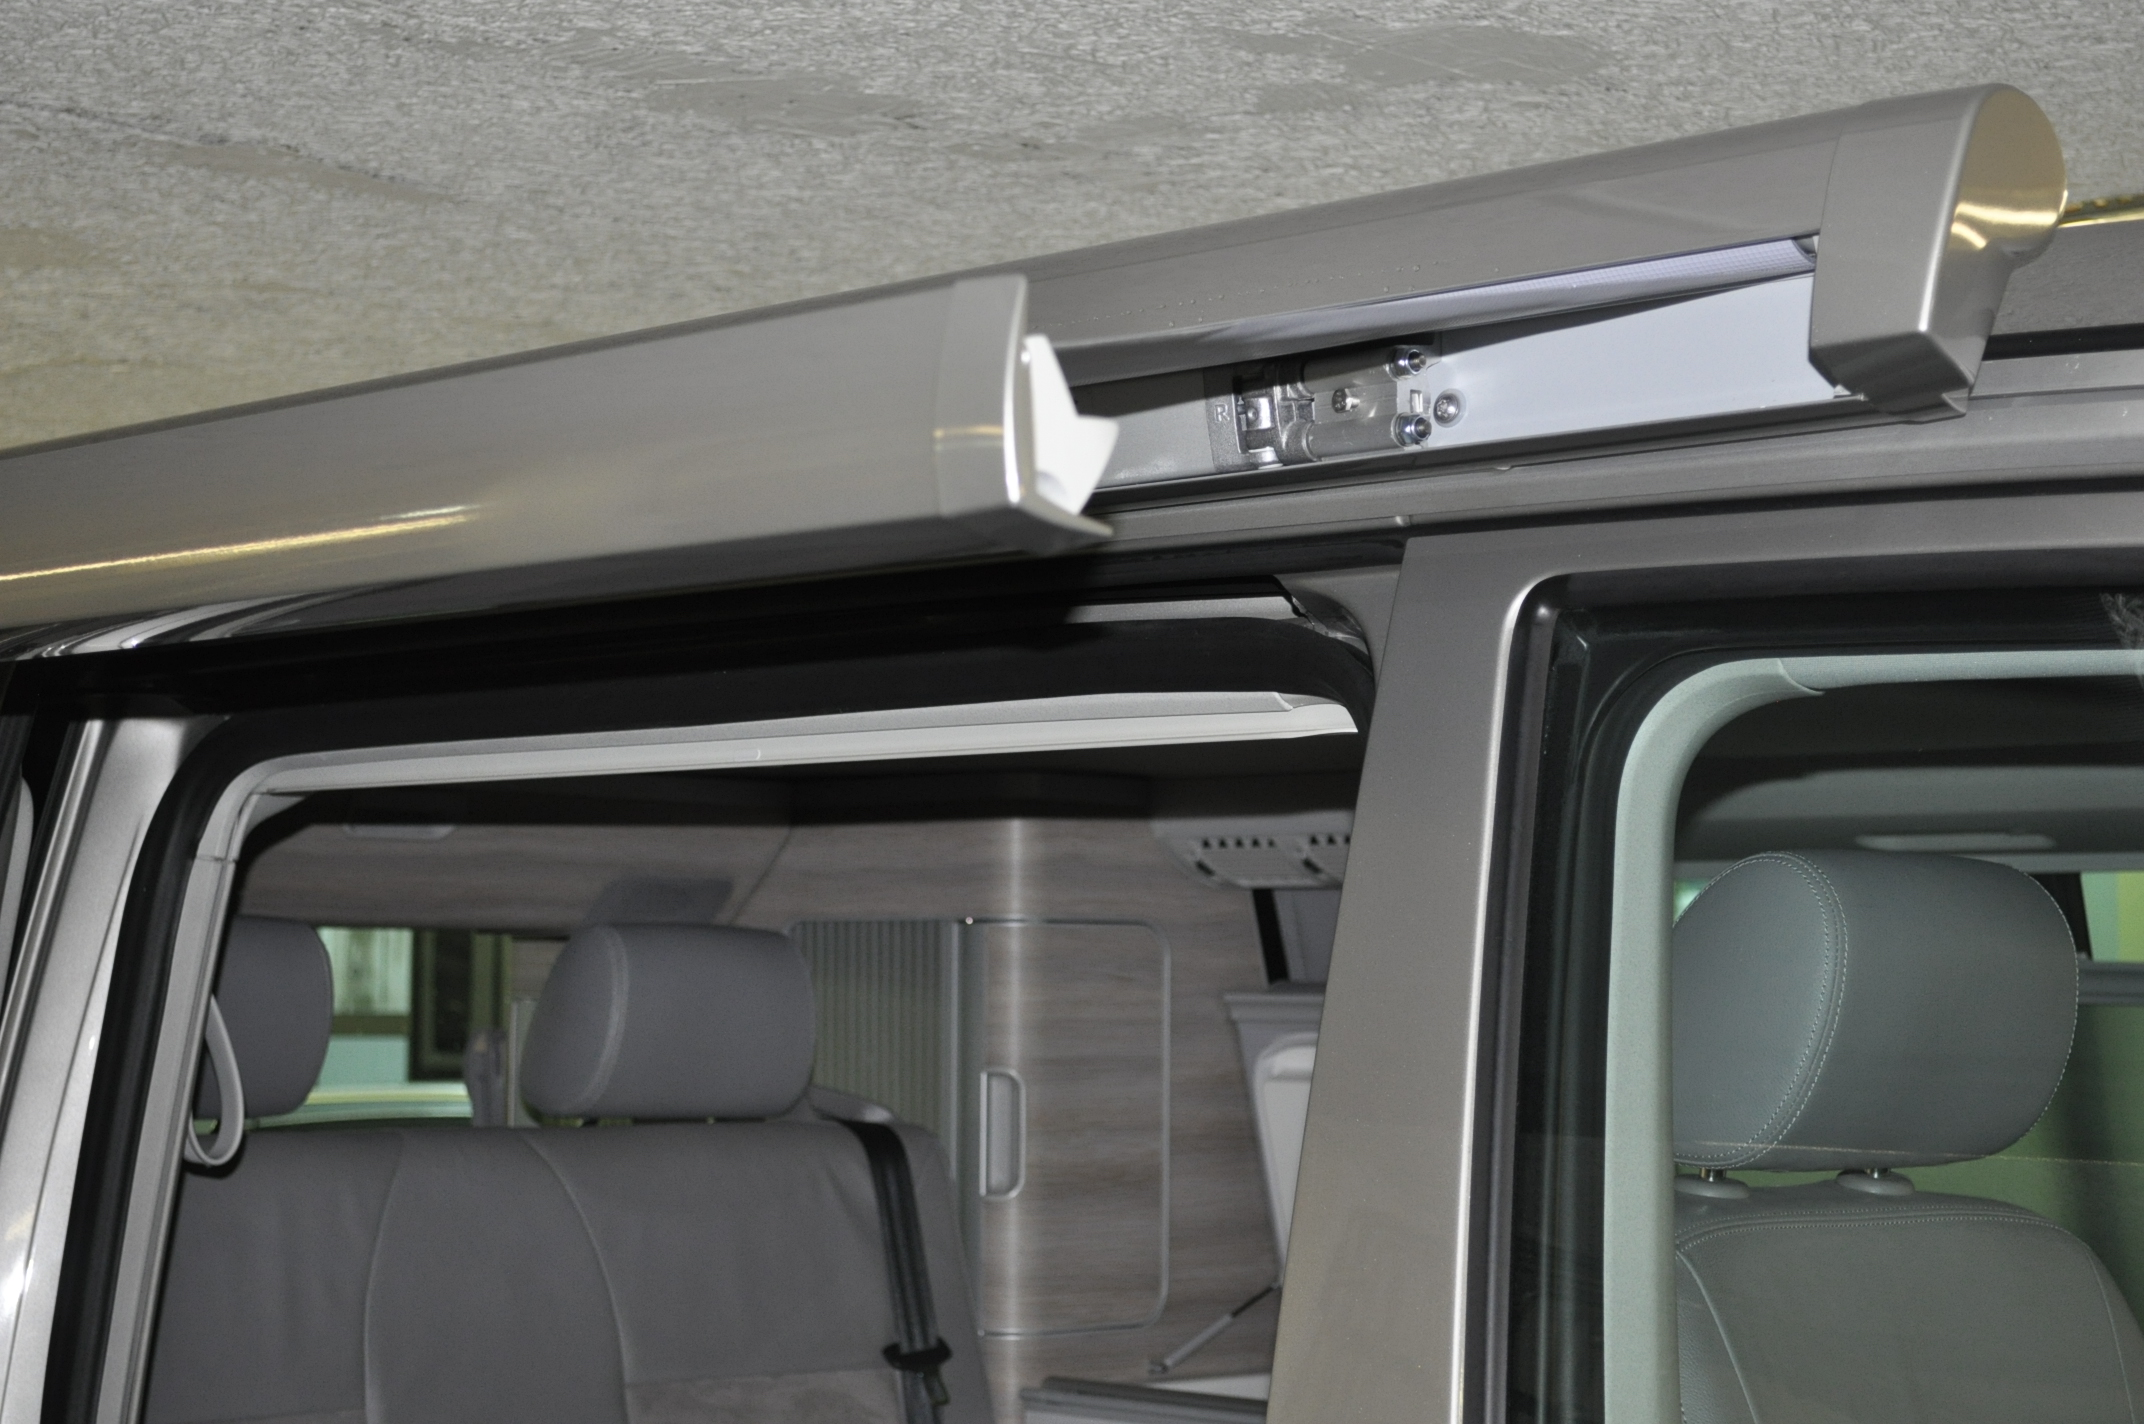 vw california t6 und t5 markise in wagenfarbe lackieren ab. Black Bedroom Furniture Sets. Home Design Ideas